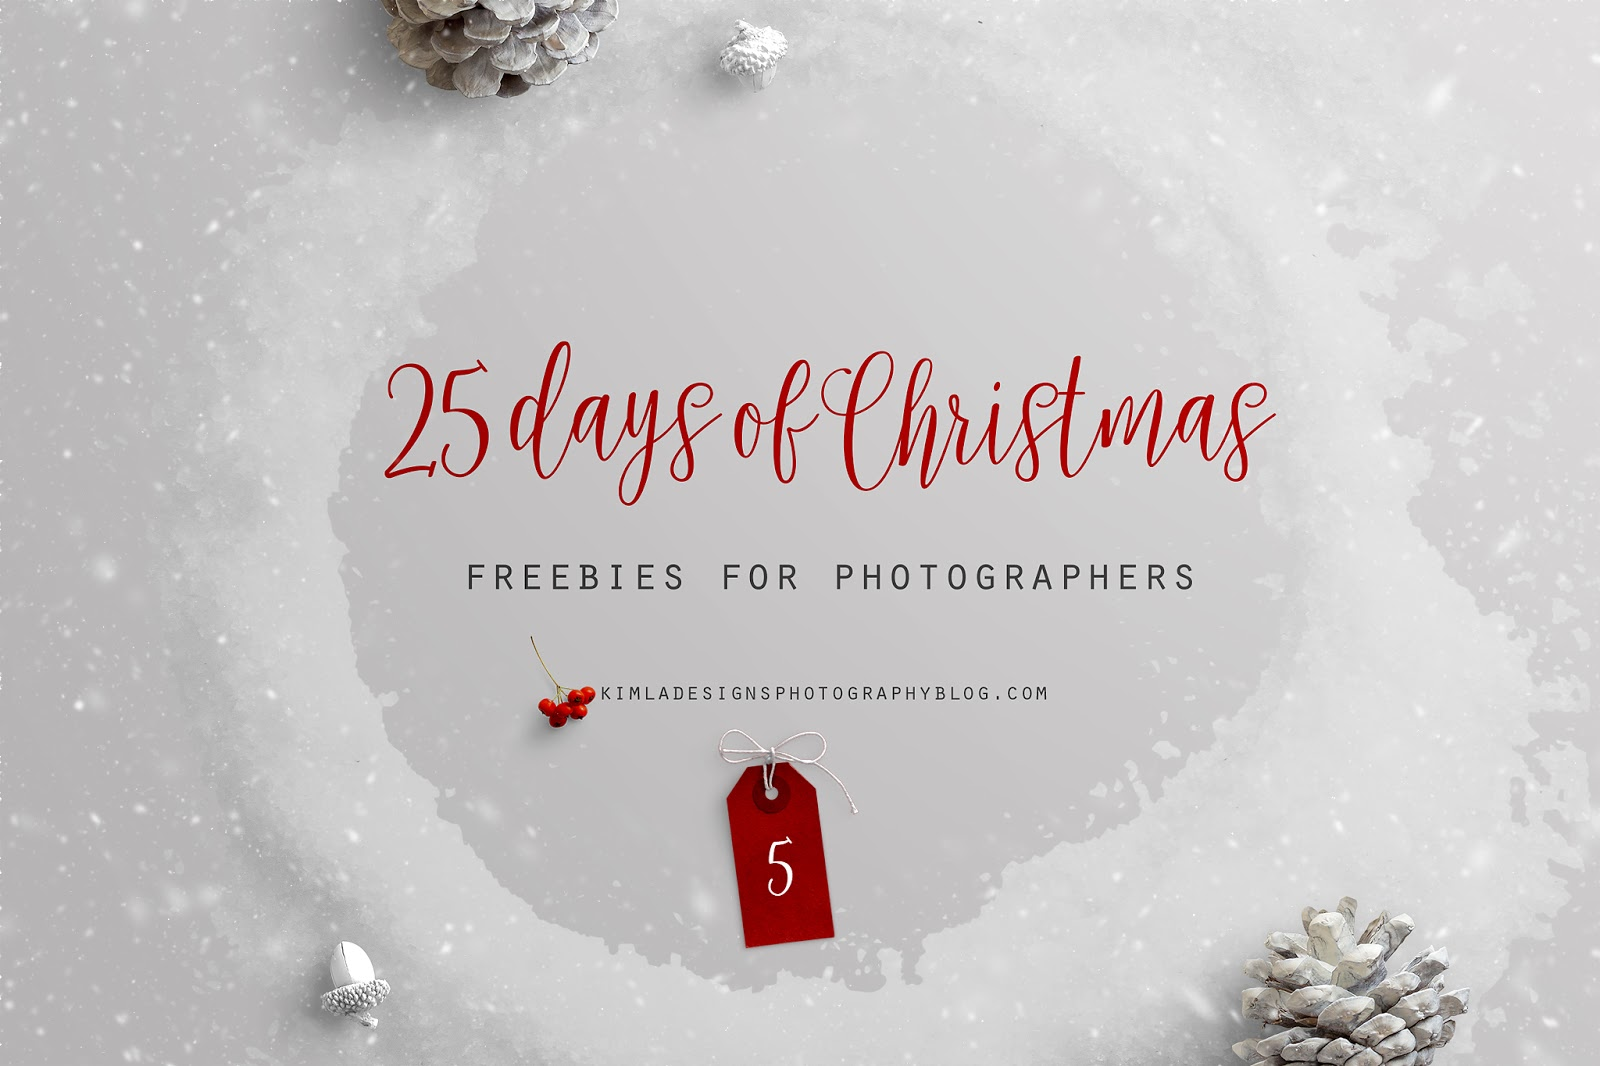 Day 5 of 25 Days of Christmas Freebies for Photographers